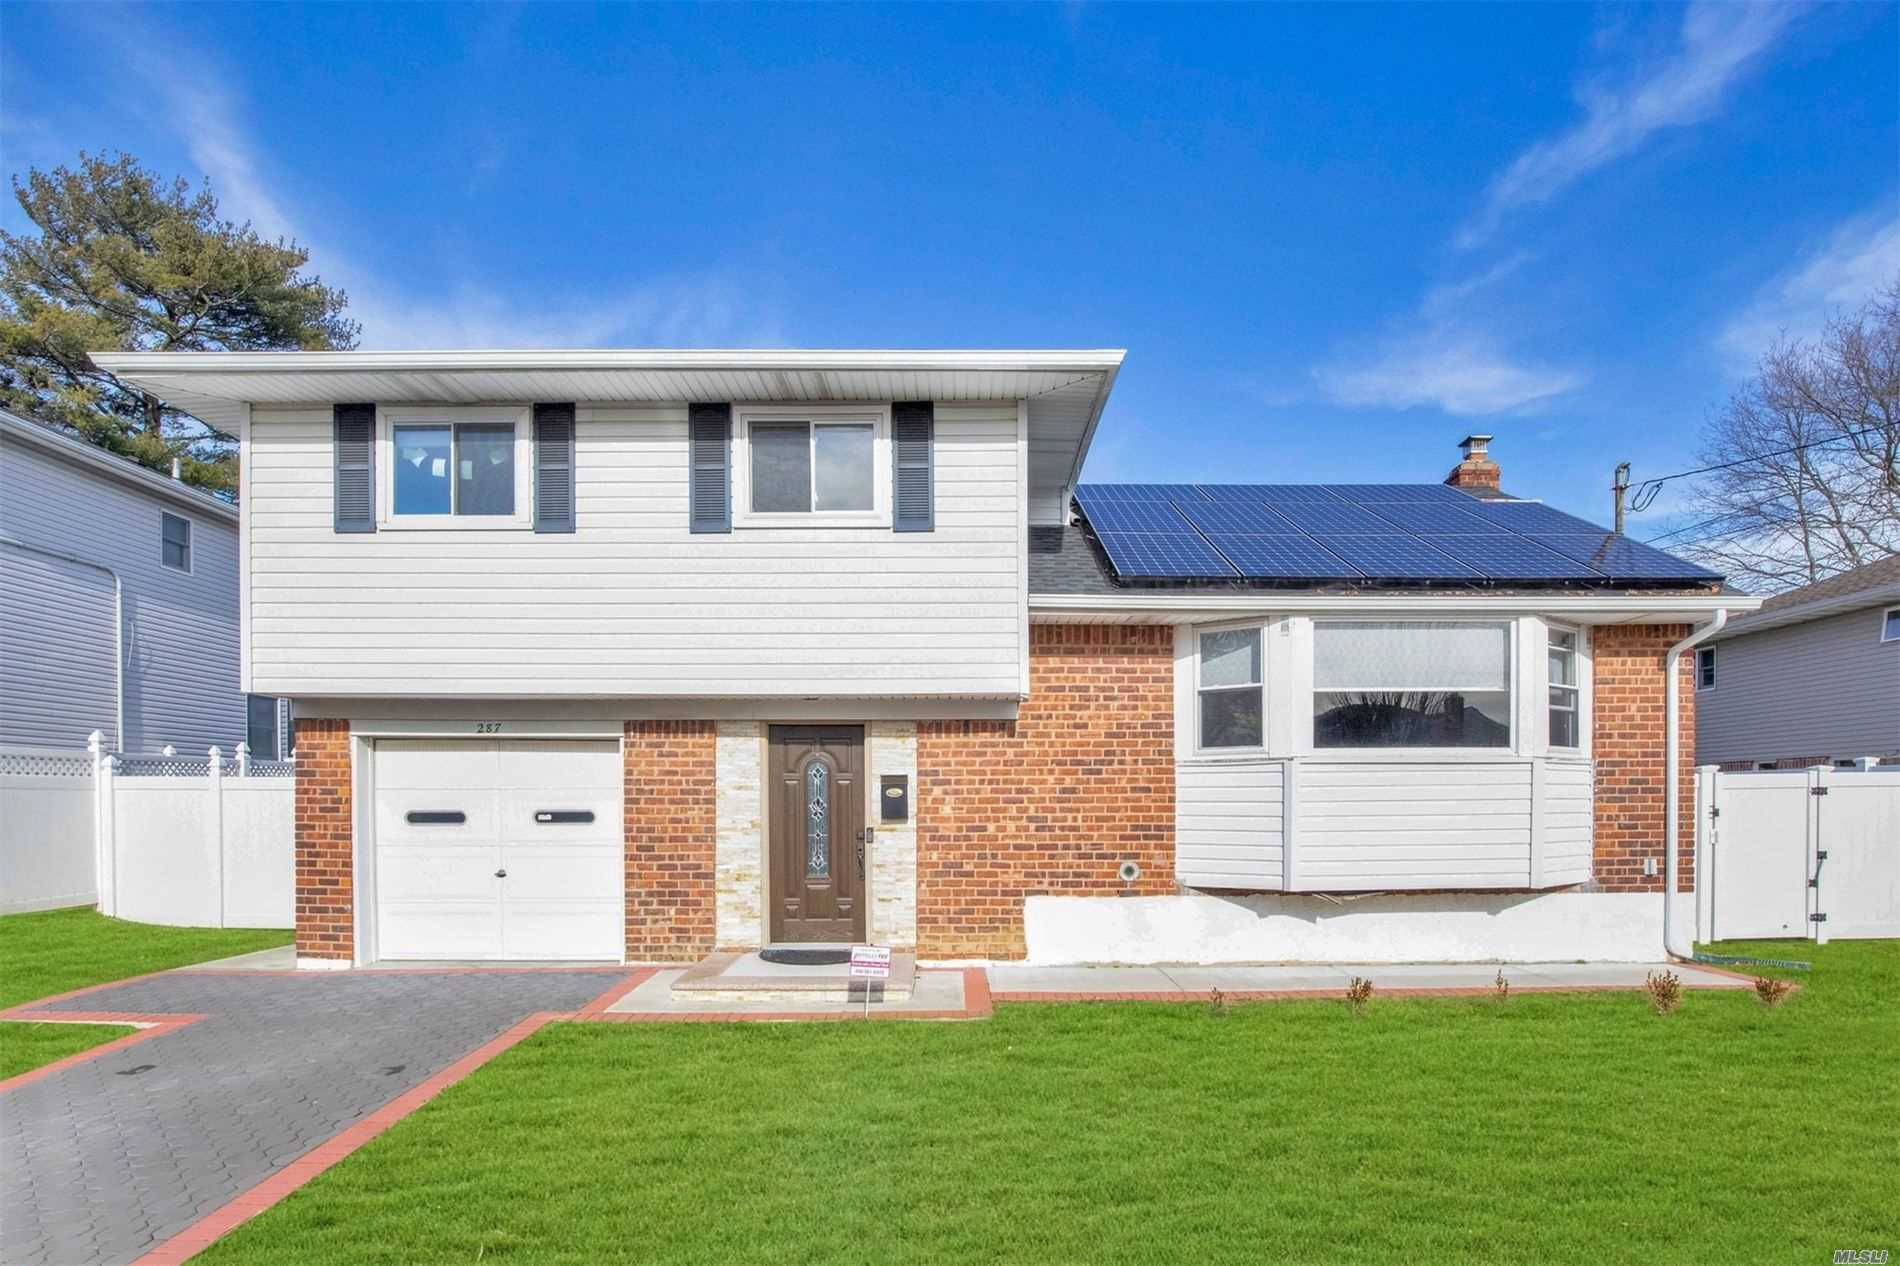 287 N Wyoming Ave 11758 - One of Massapequa Homes for Sale